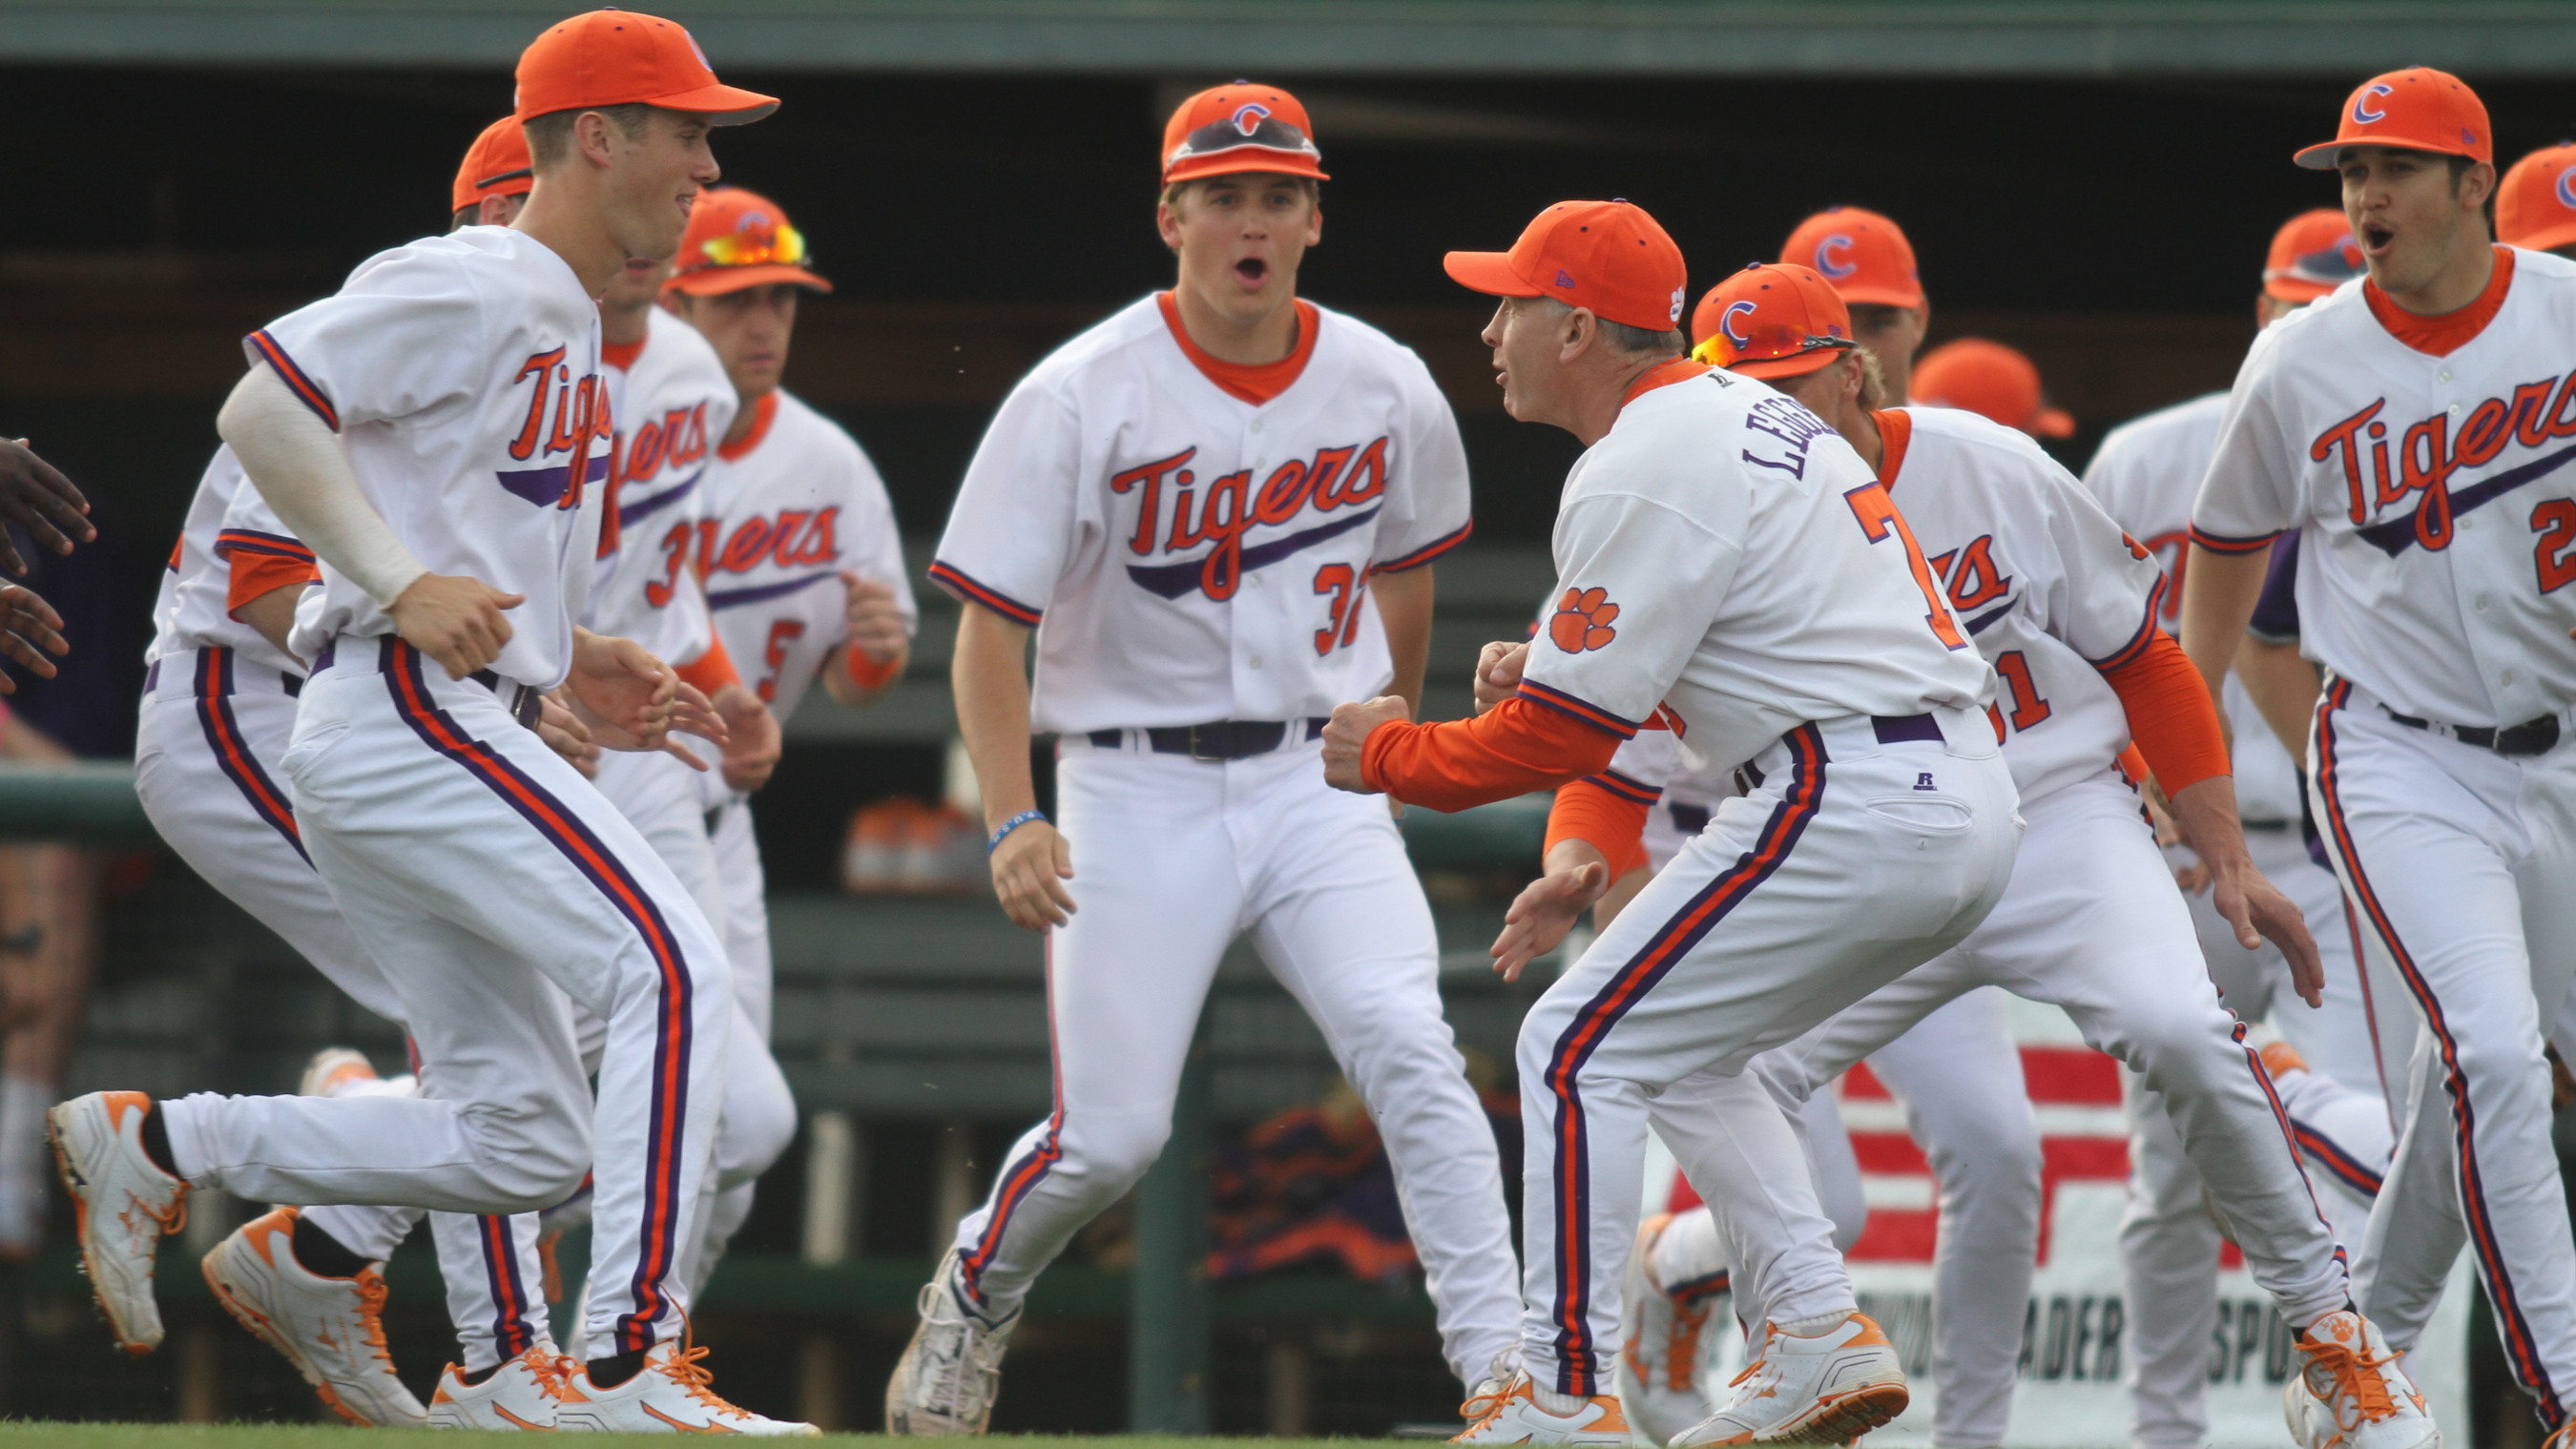 Six-Run Seventh Inning Propels Tigers to 7-5 Win at Boston College Friday